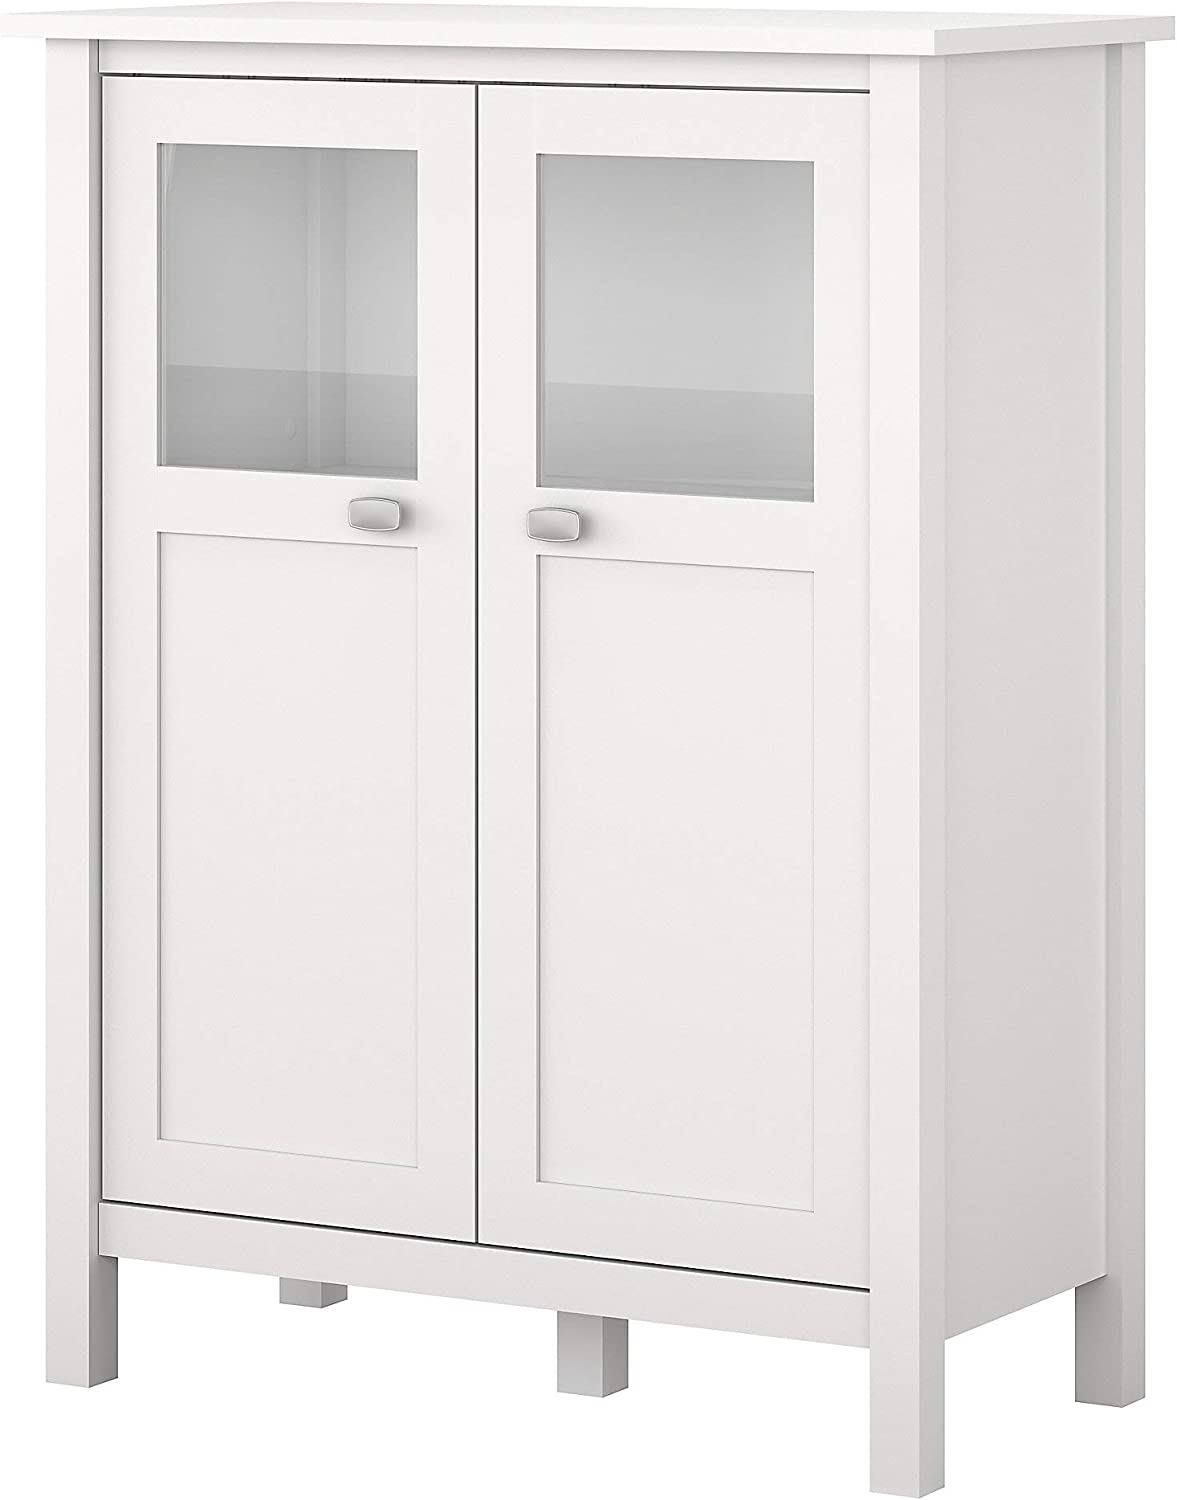 Bush Furniture Broadview Bathroom Storage Cabinet in White